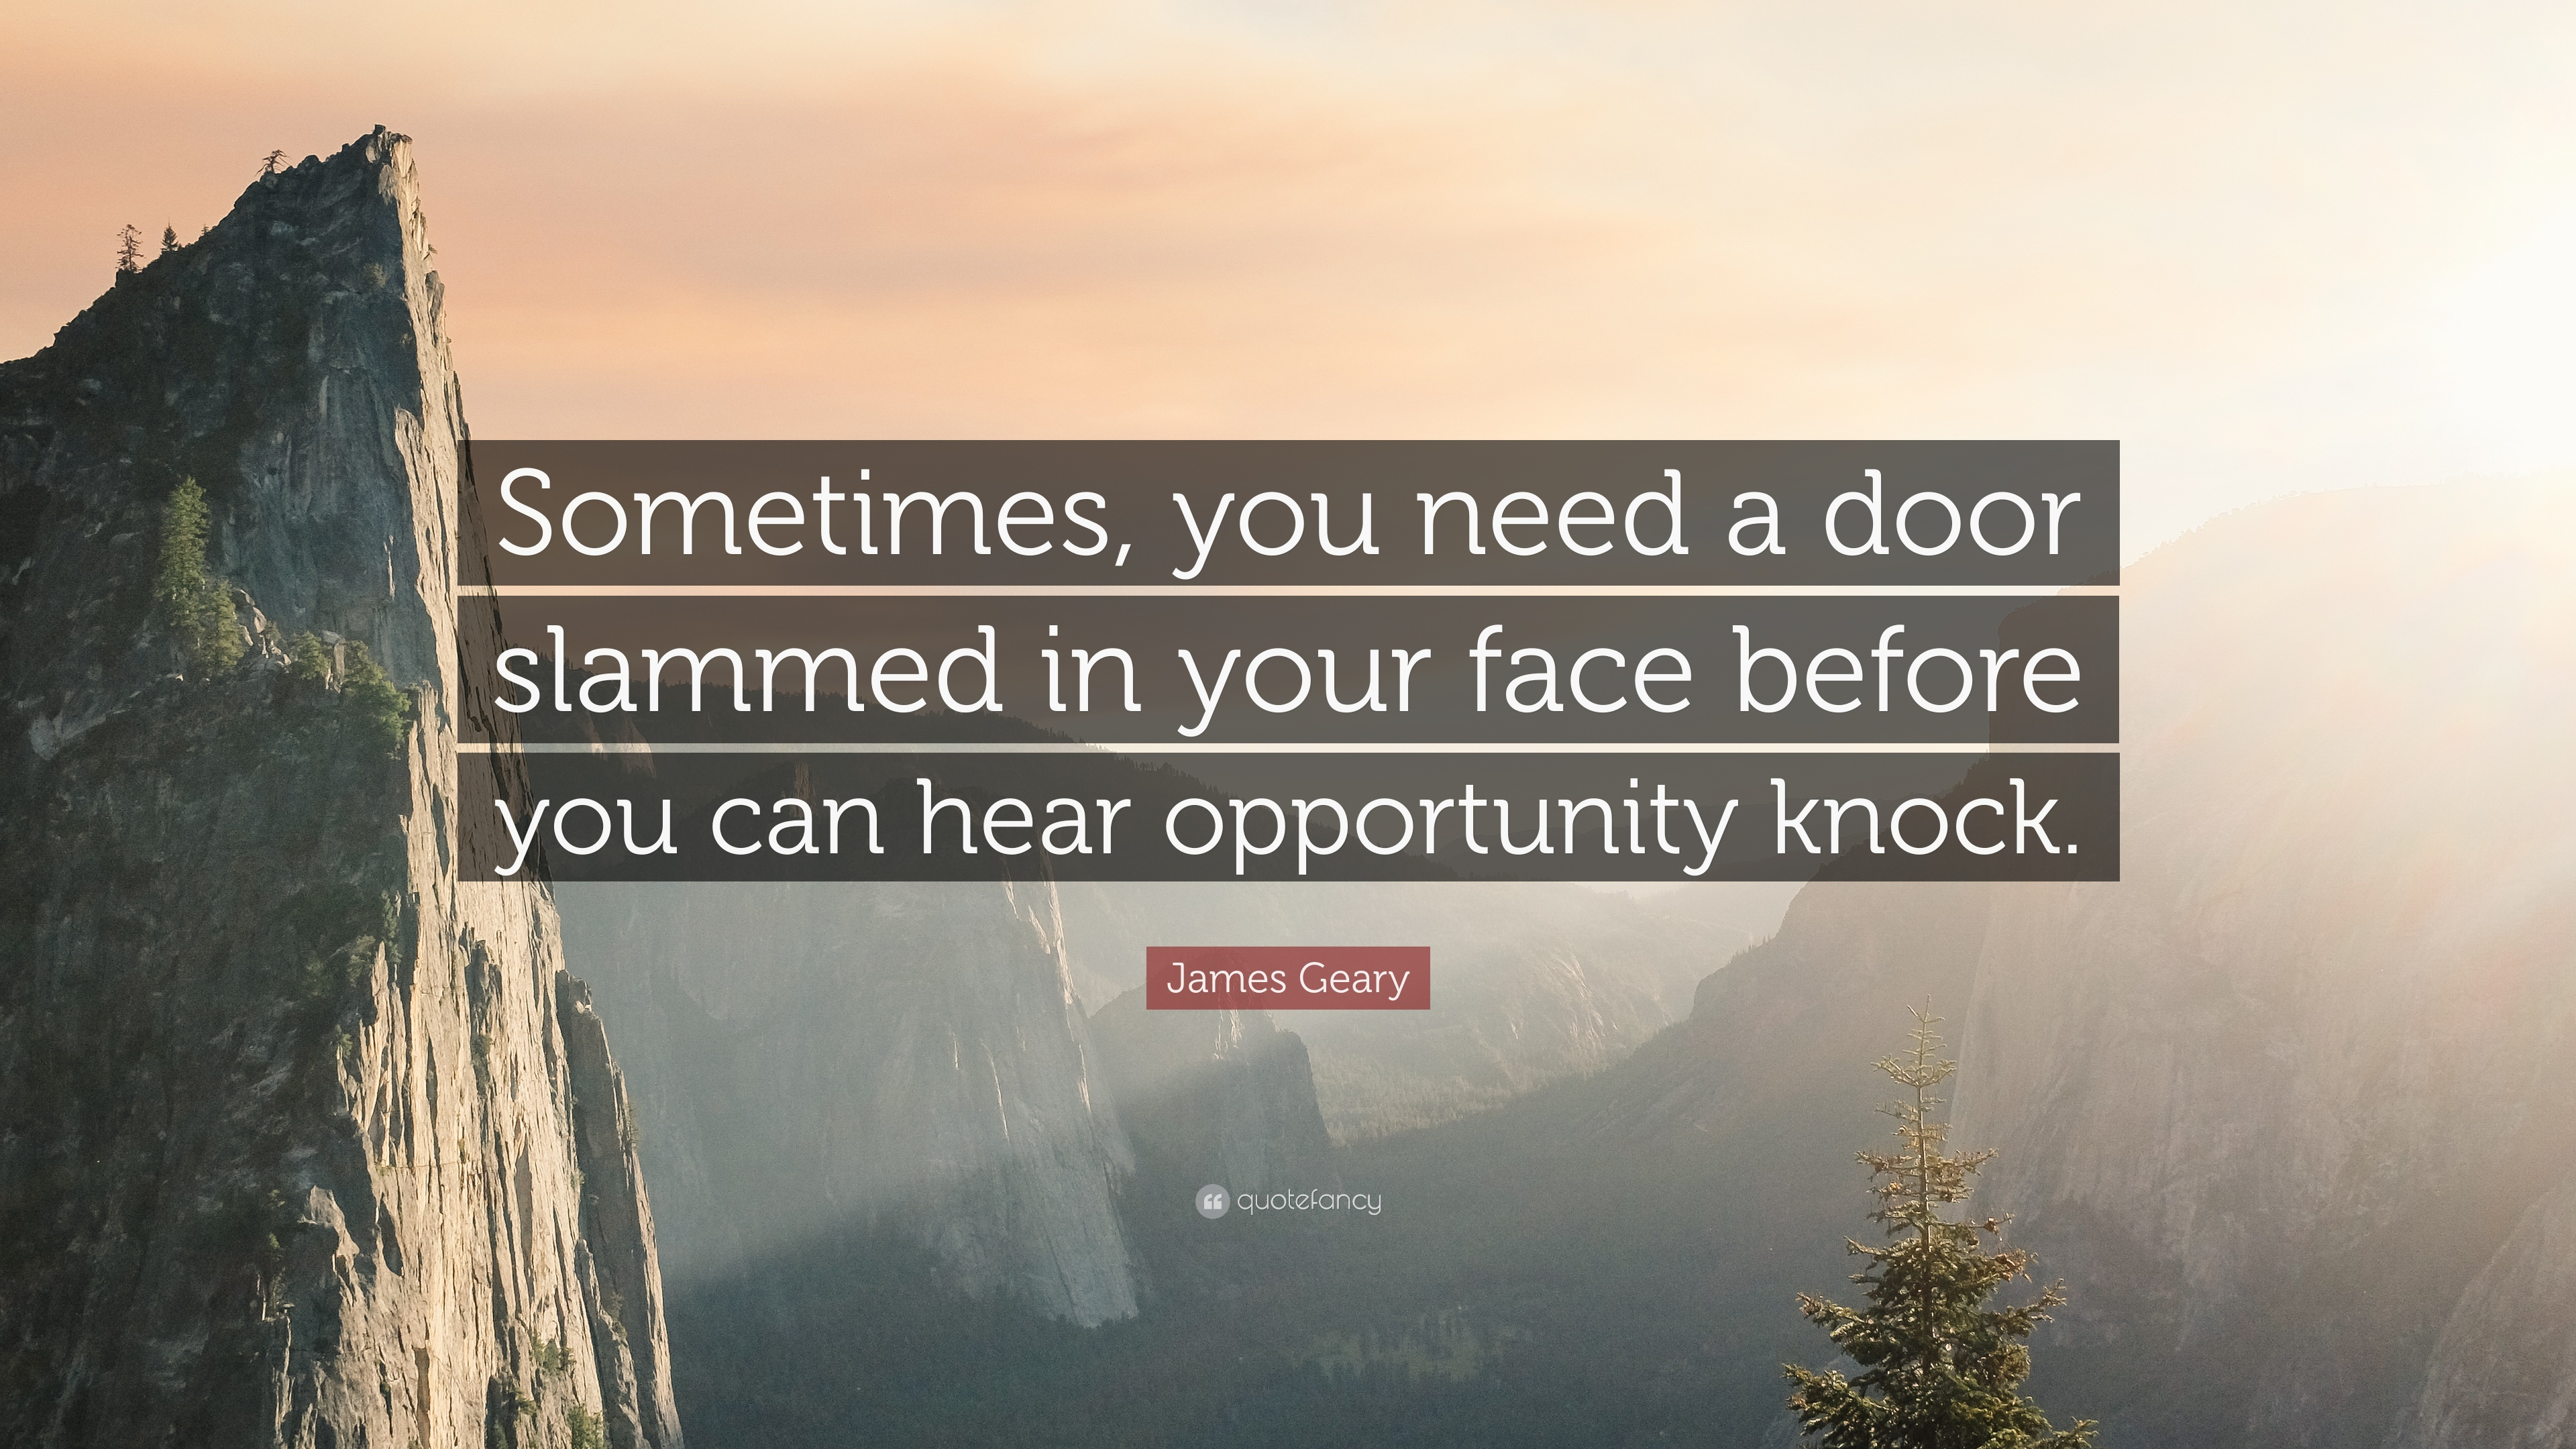 James Geary Quote u201cSometimes you need a door slammed in your face before & James Geary Quote: u201cSometimes you need a door slammed in your ... pezcame.com